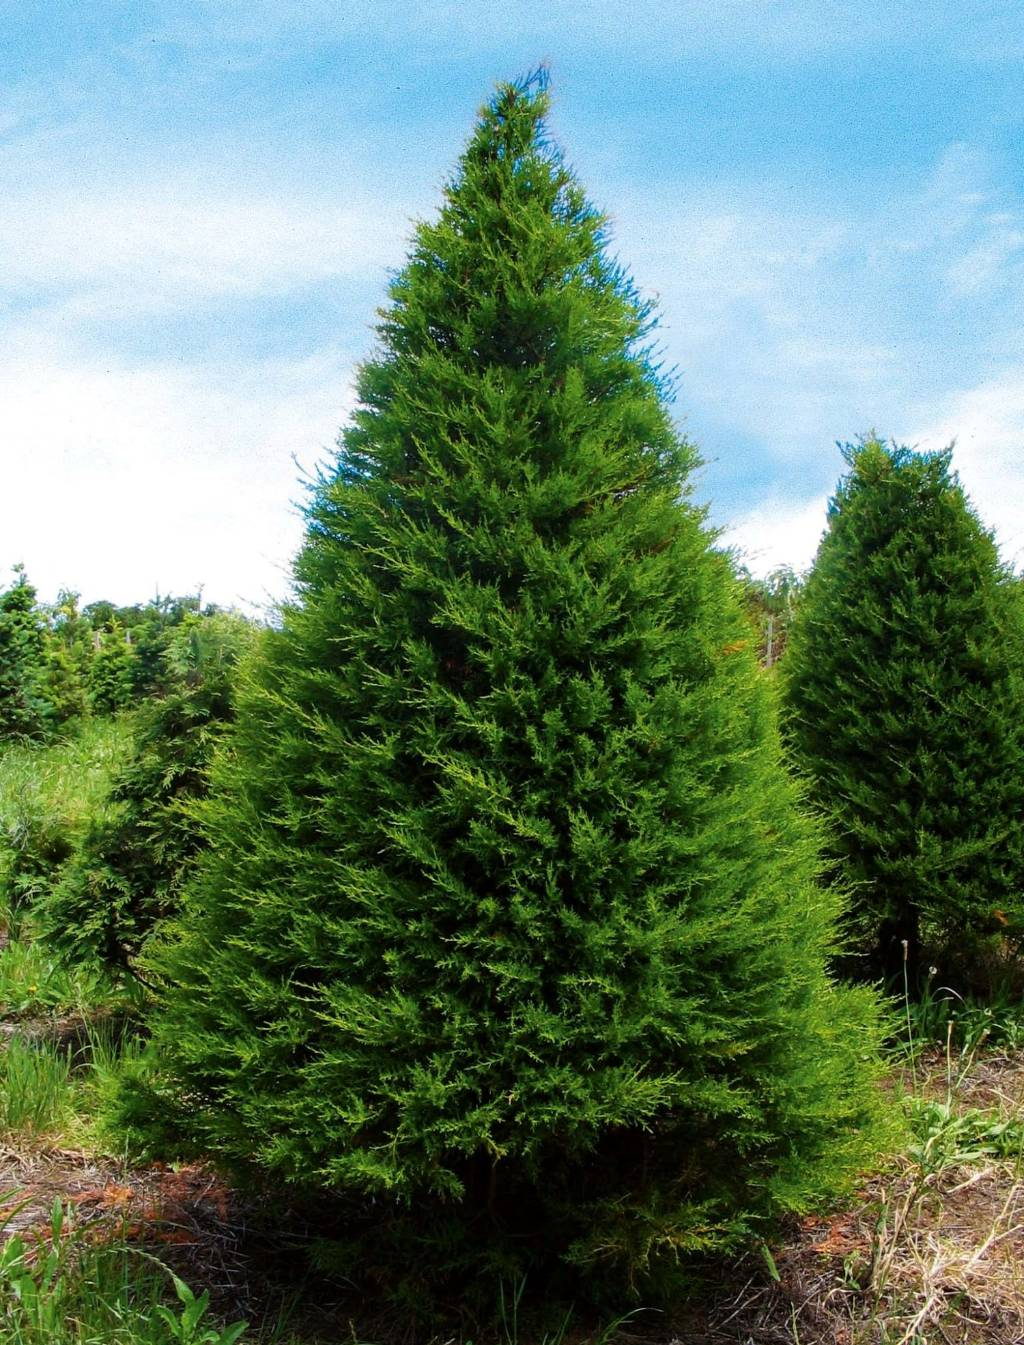 Macrocarpa (Cupressus macrocarpa) grow readily in New Zealand. And while a long way